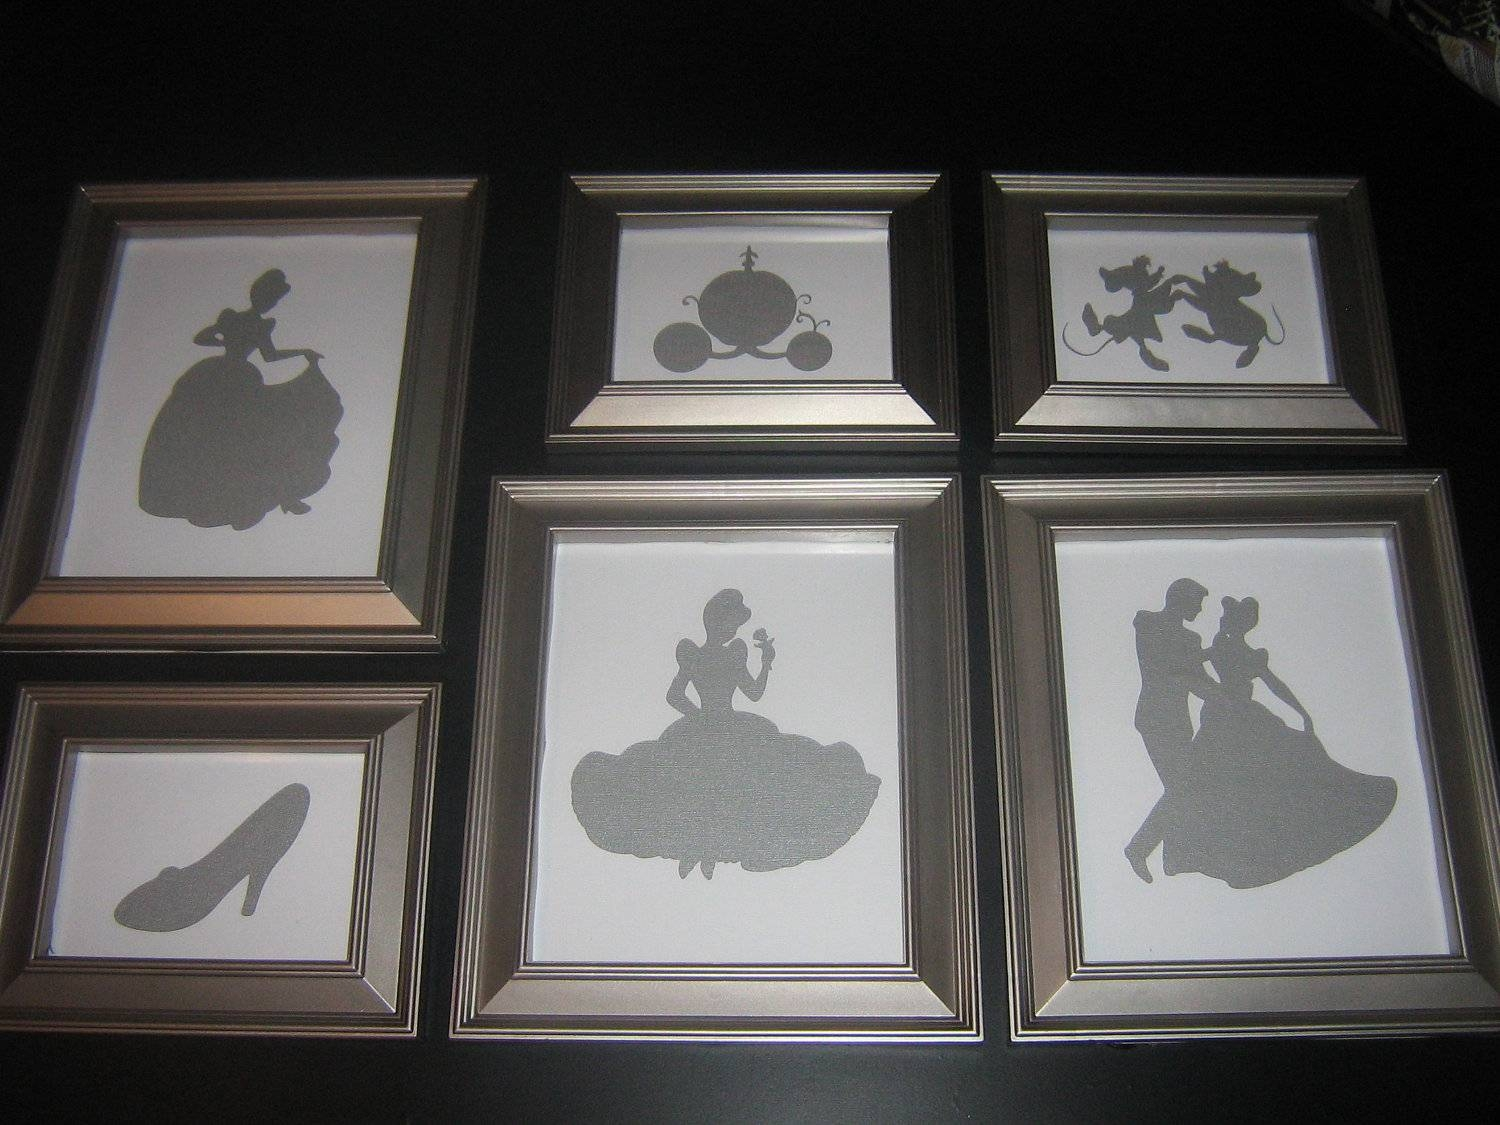 Disney Framed Pictures Images – Craft Decoration Ideas With Regard To Best And Newest Disney Princess Framed Wall Art (View 5 of 20)